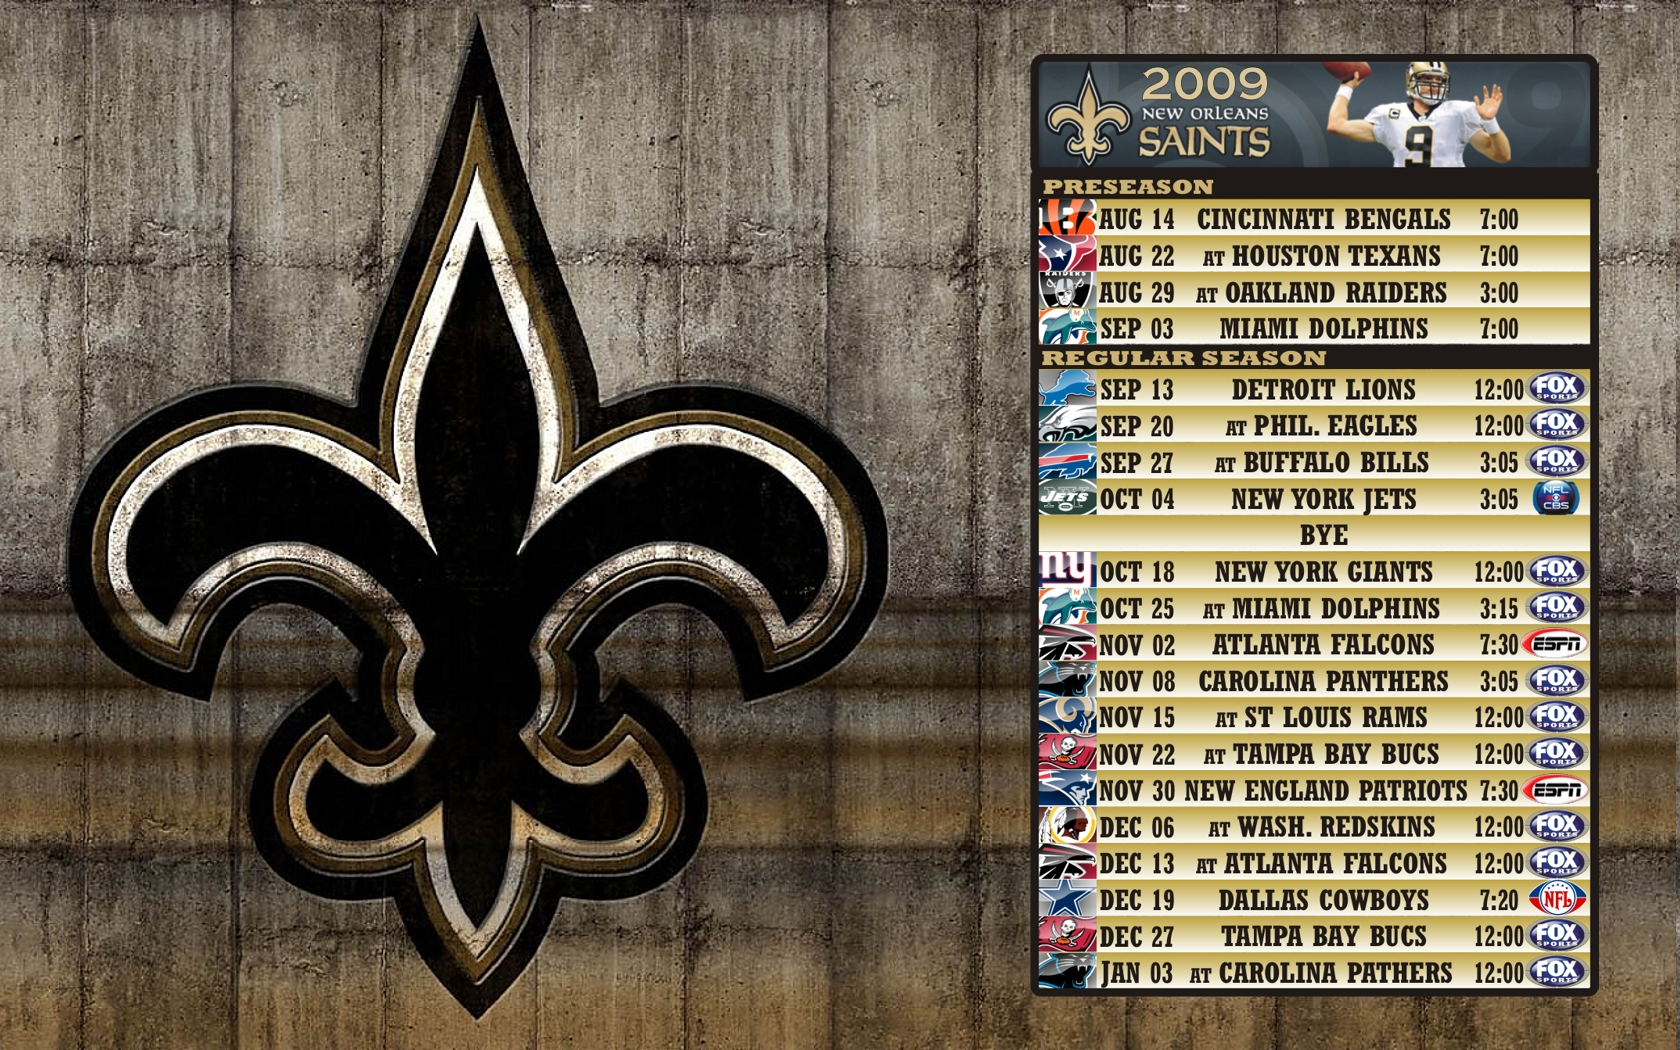 New Orleans Saints News, Scores, Status, Schedule - …